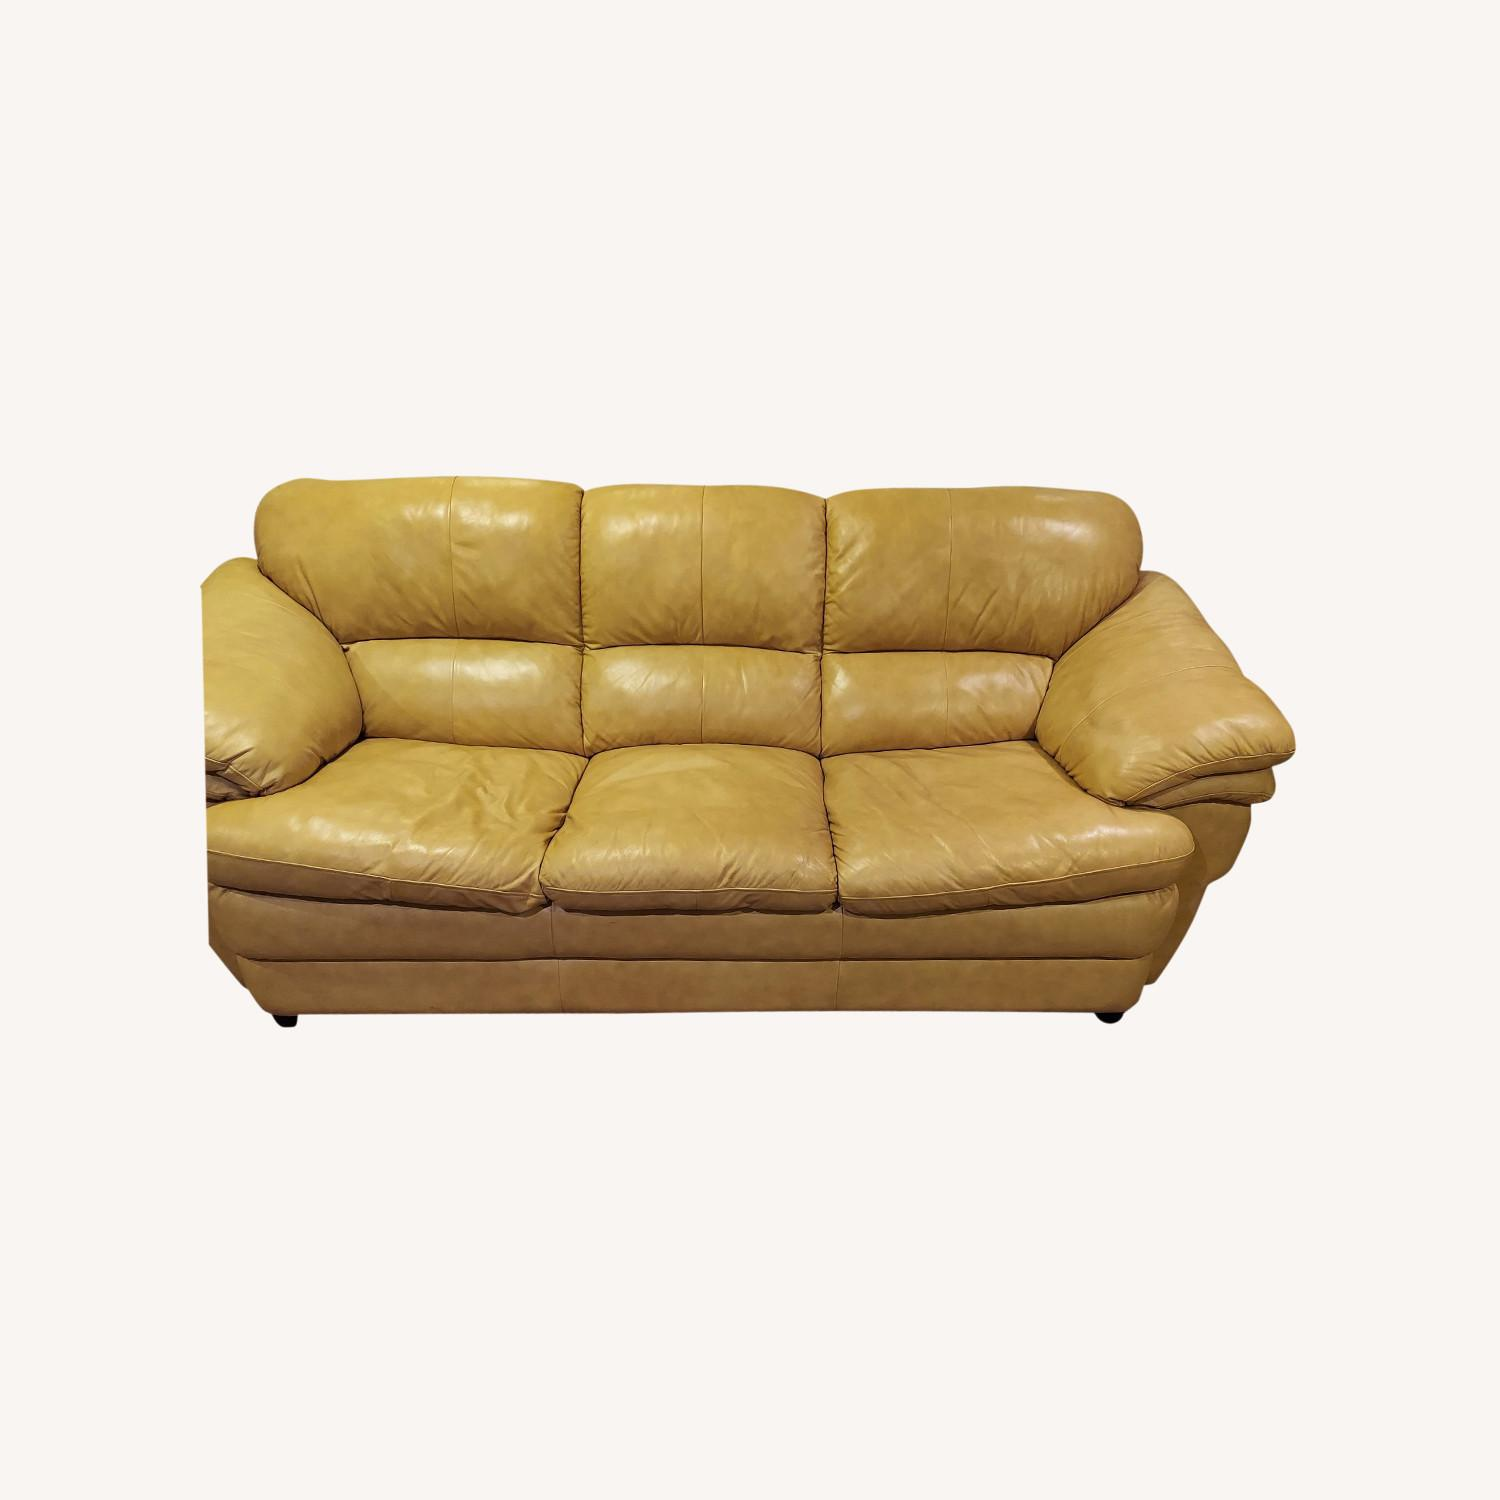 Bob's Discount Natural Bonded Leather 3 Seater Sofa - image-0